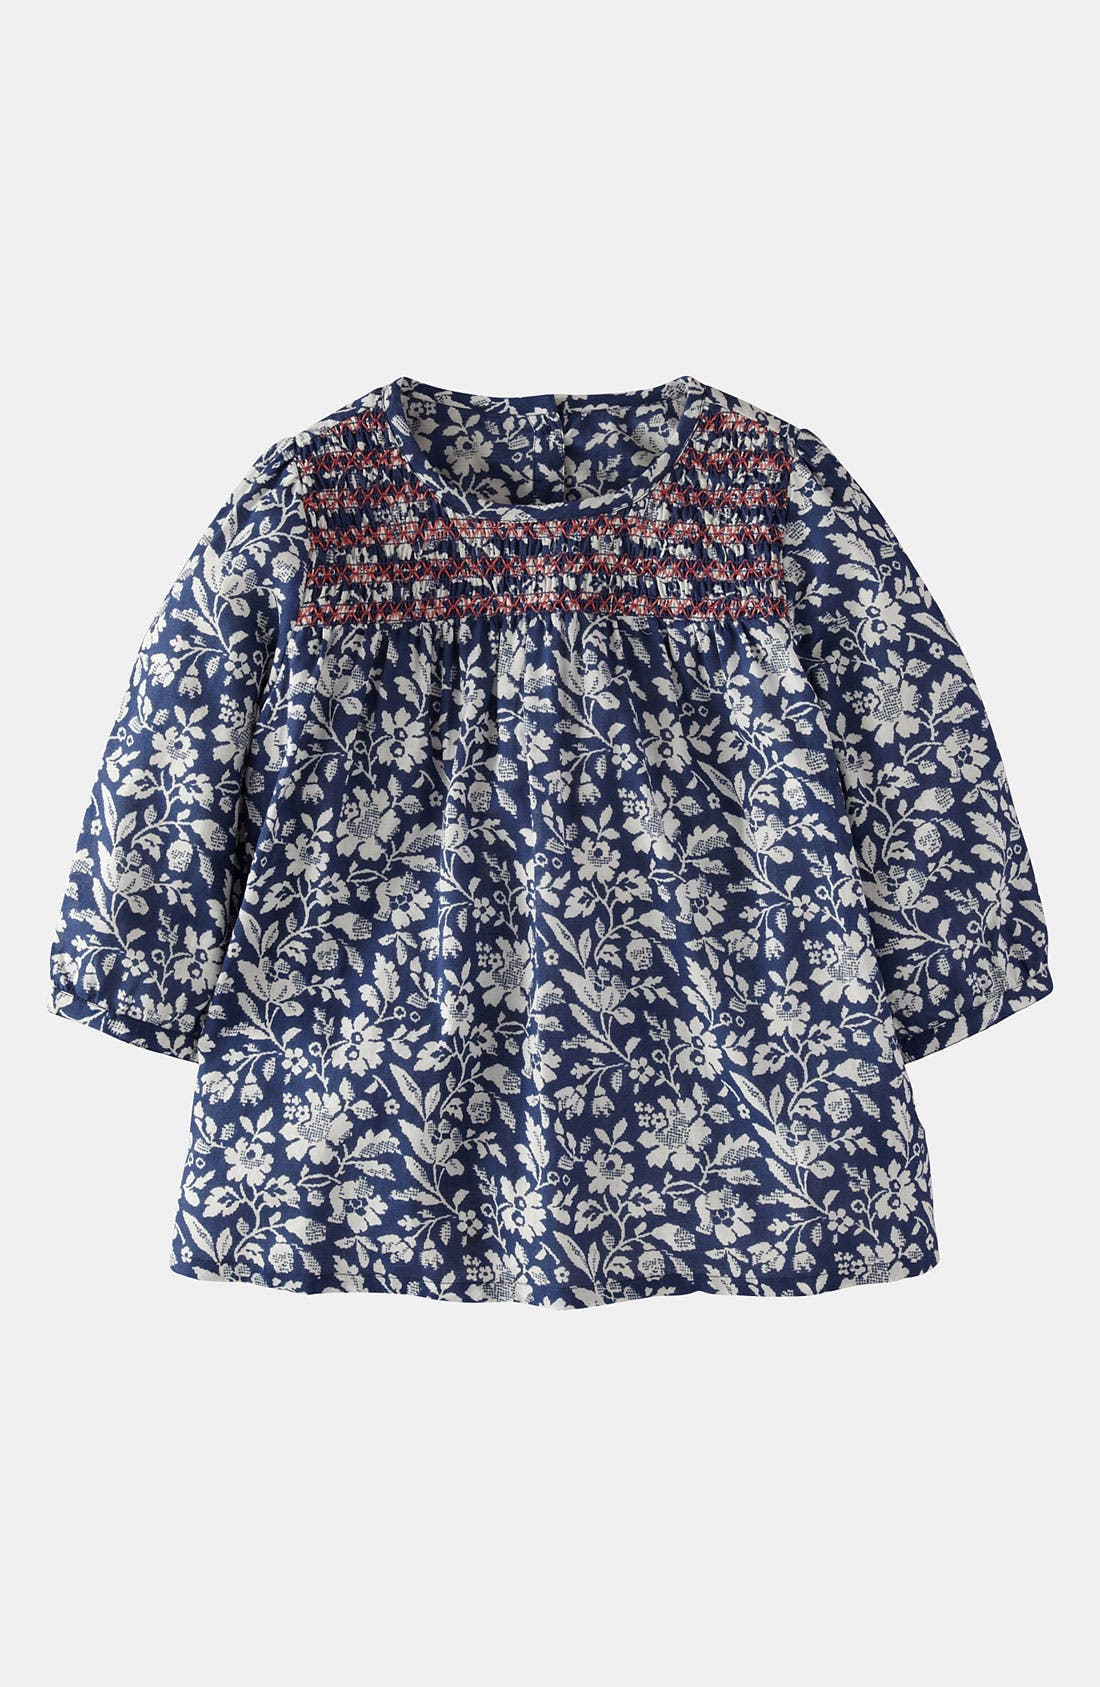 Alternate Image 1 Selected - Mini Boden Smocked Top (Little Girls & Big Girls)